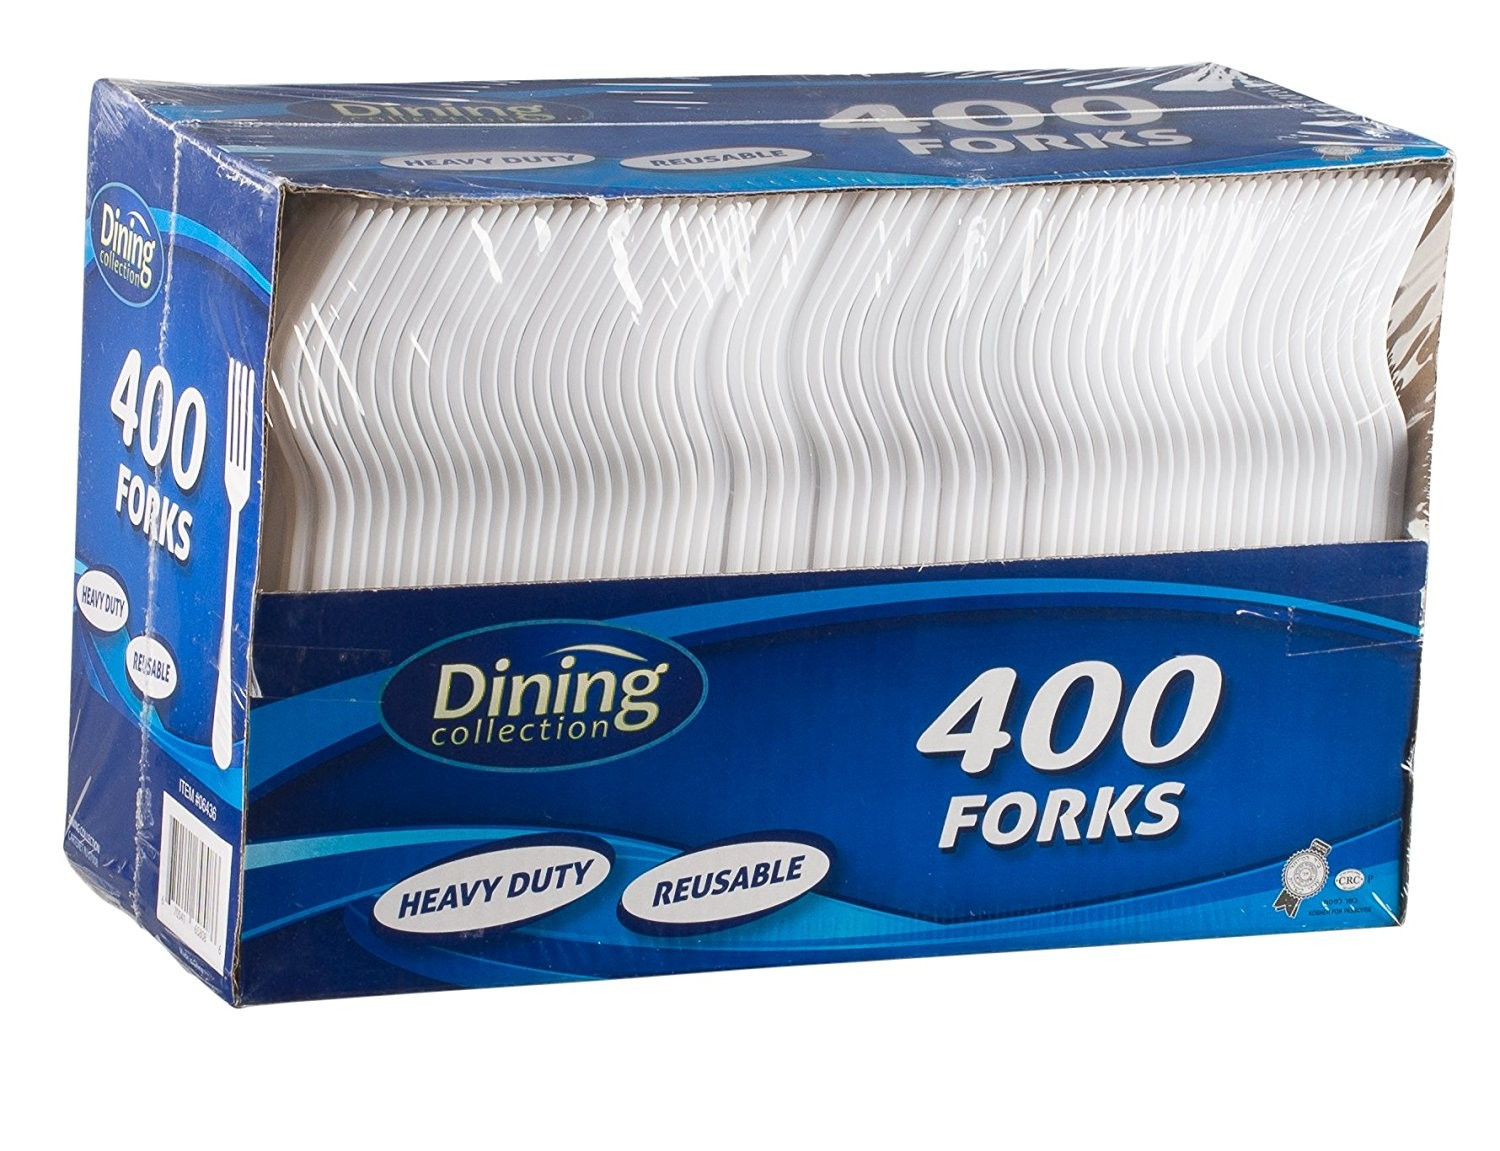 White Forks Medium Weight 400 Count